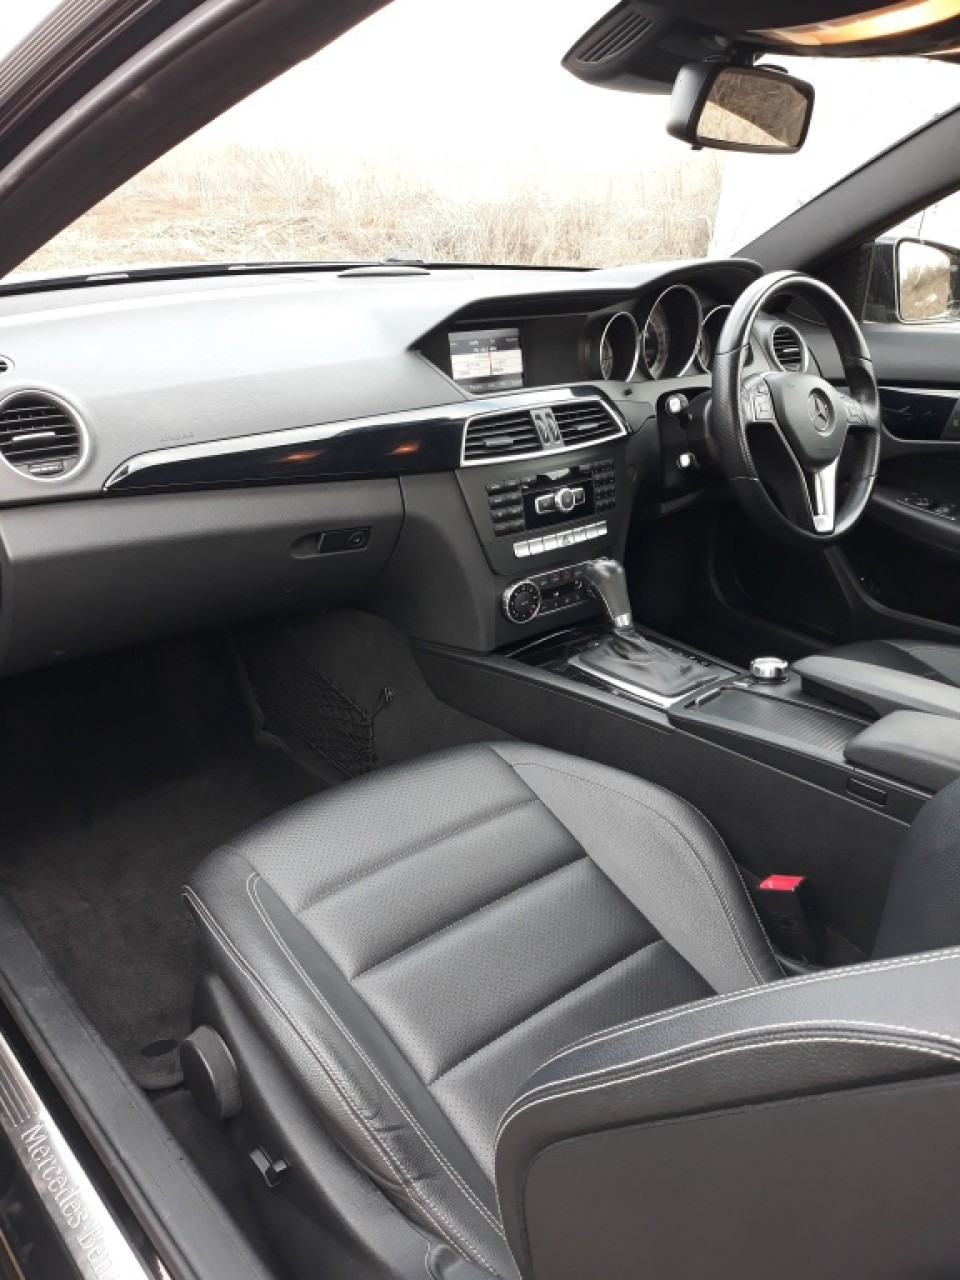 Punte spate Mercedes C-CLASS W204 2013 coupe 2.2